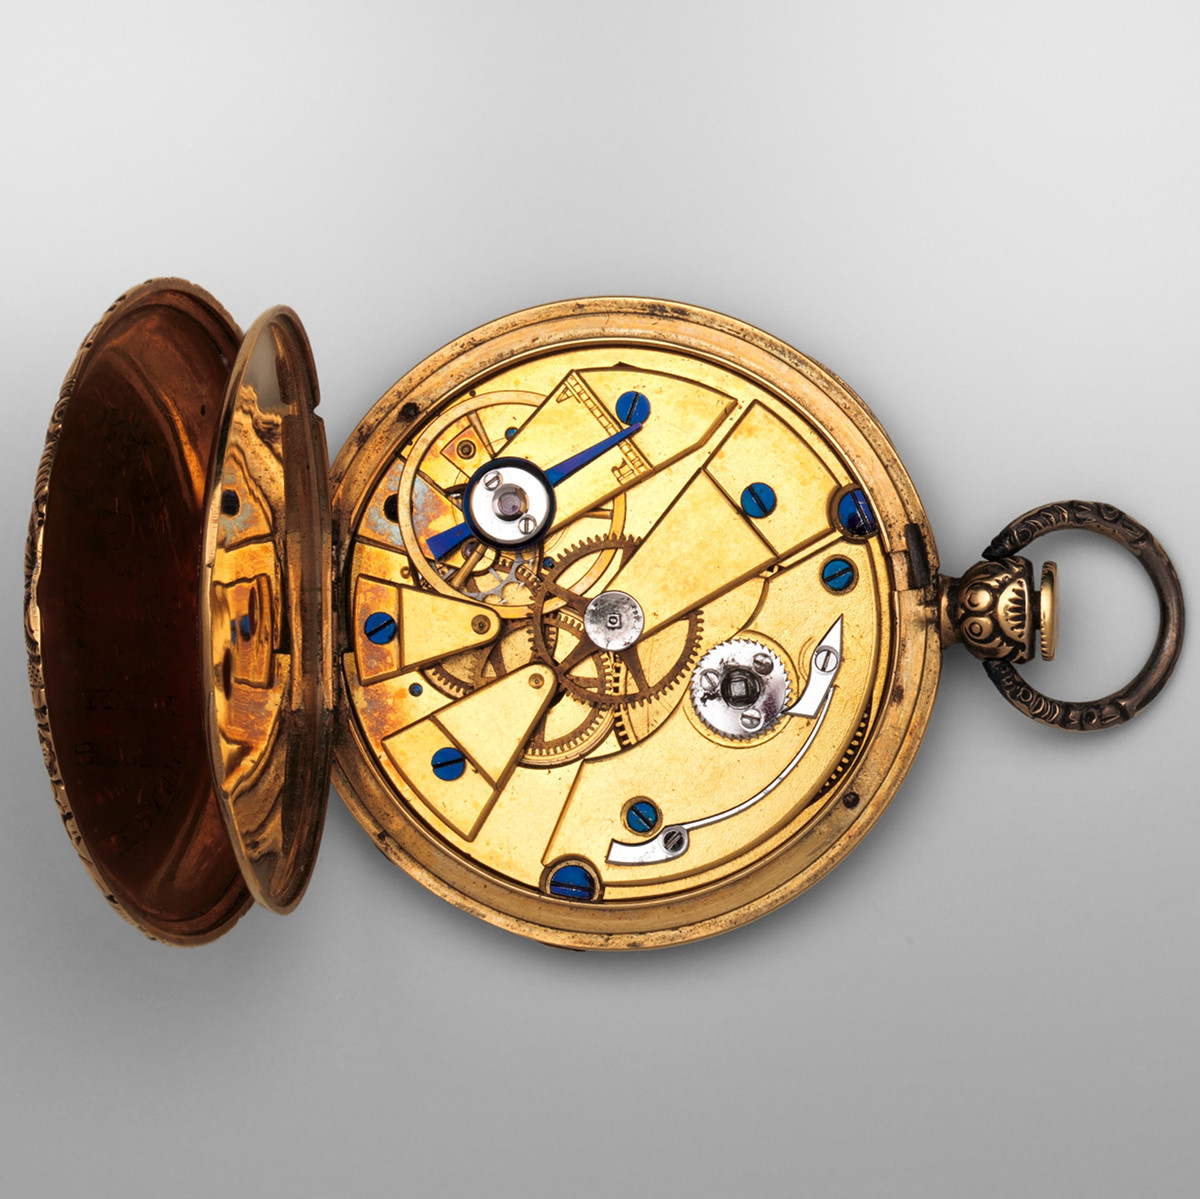 1832. Watch. Swiss, Geneva. Case partly gold, enamel, and silver; Movement brass and steel with ruby. metmuseum